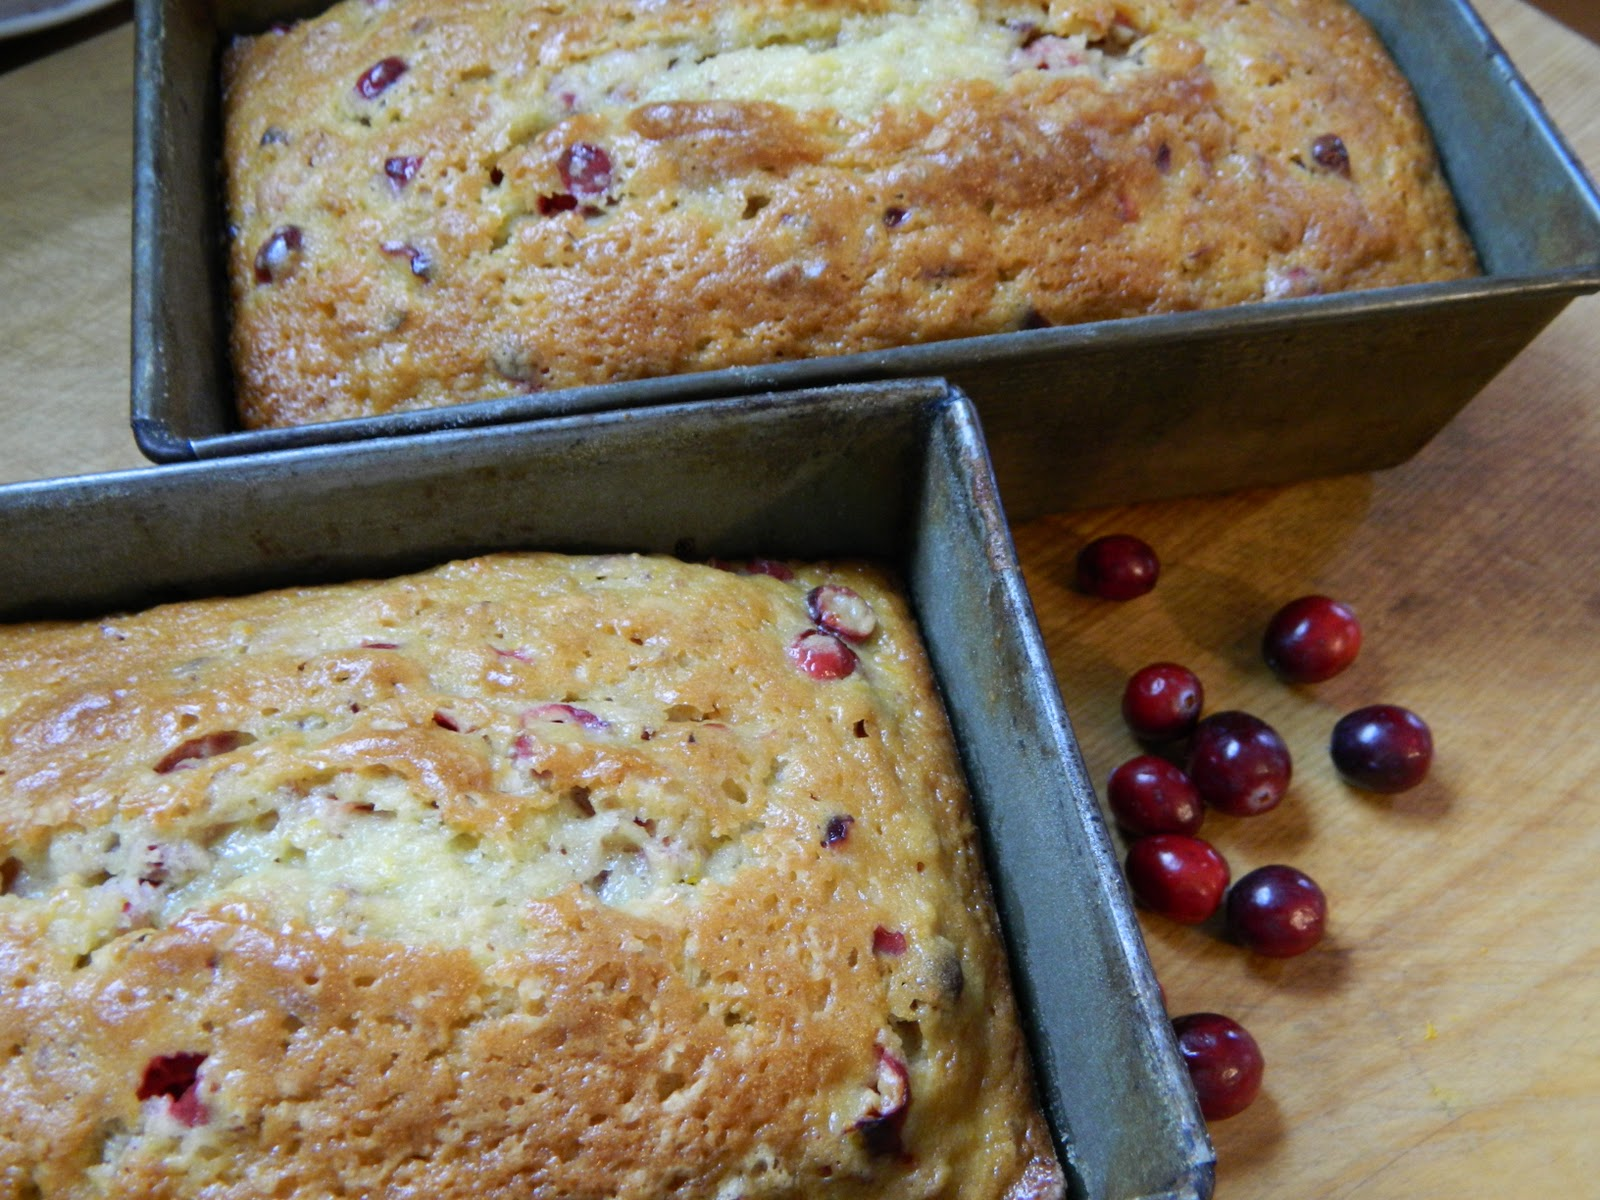 The Wednesday Baker: CRANBERRY ORANGE PECAN BREAD